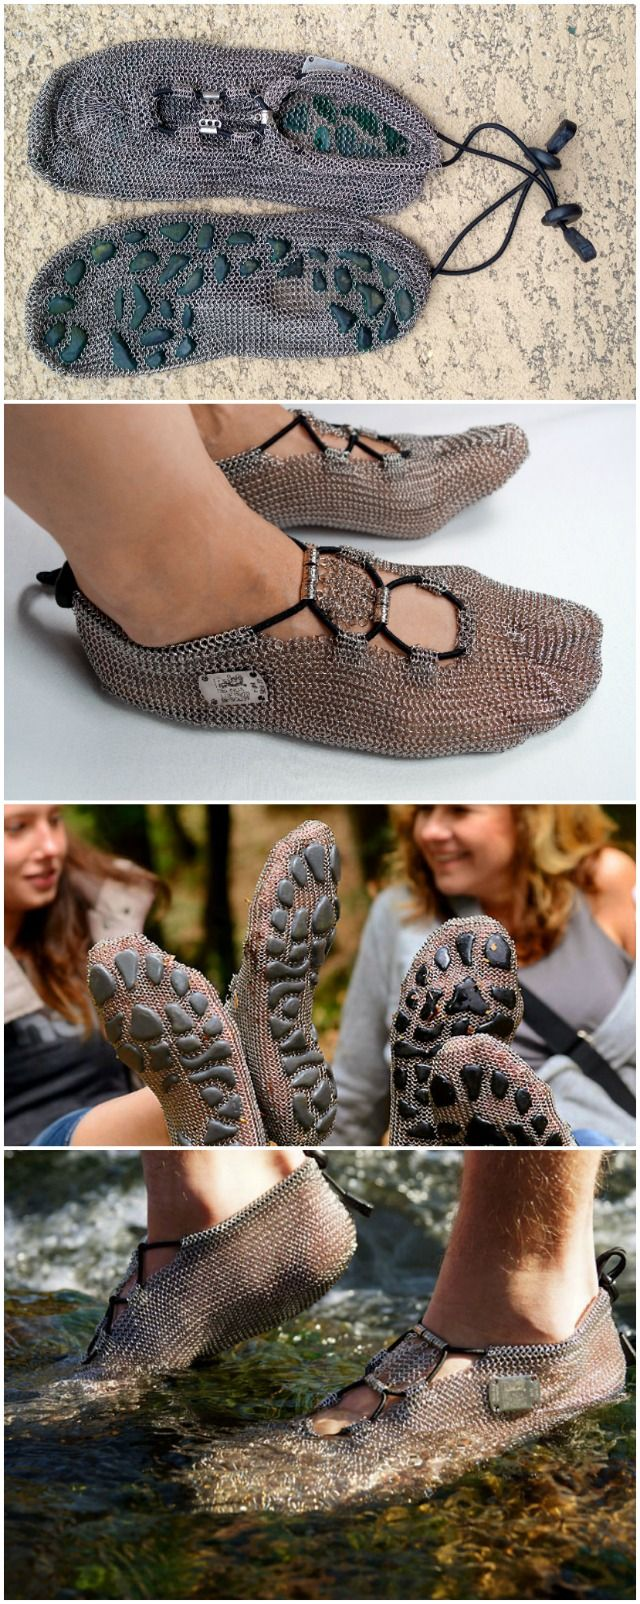 PaleoBarefoots Outback Shoes Leaves You Barefooted Cool Camping GadgetsKids